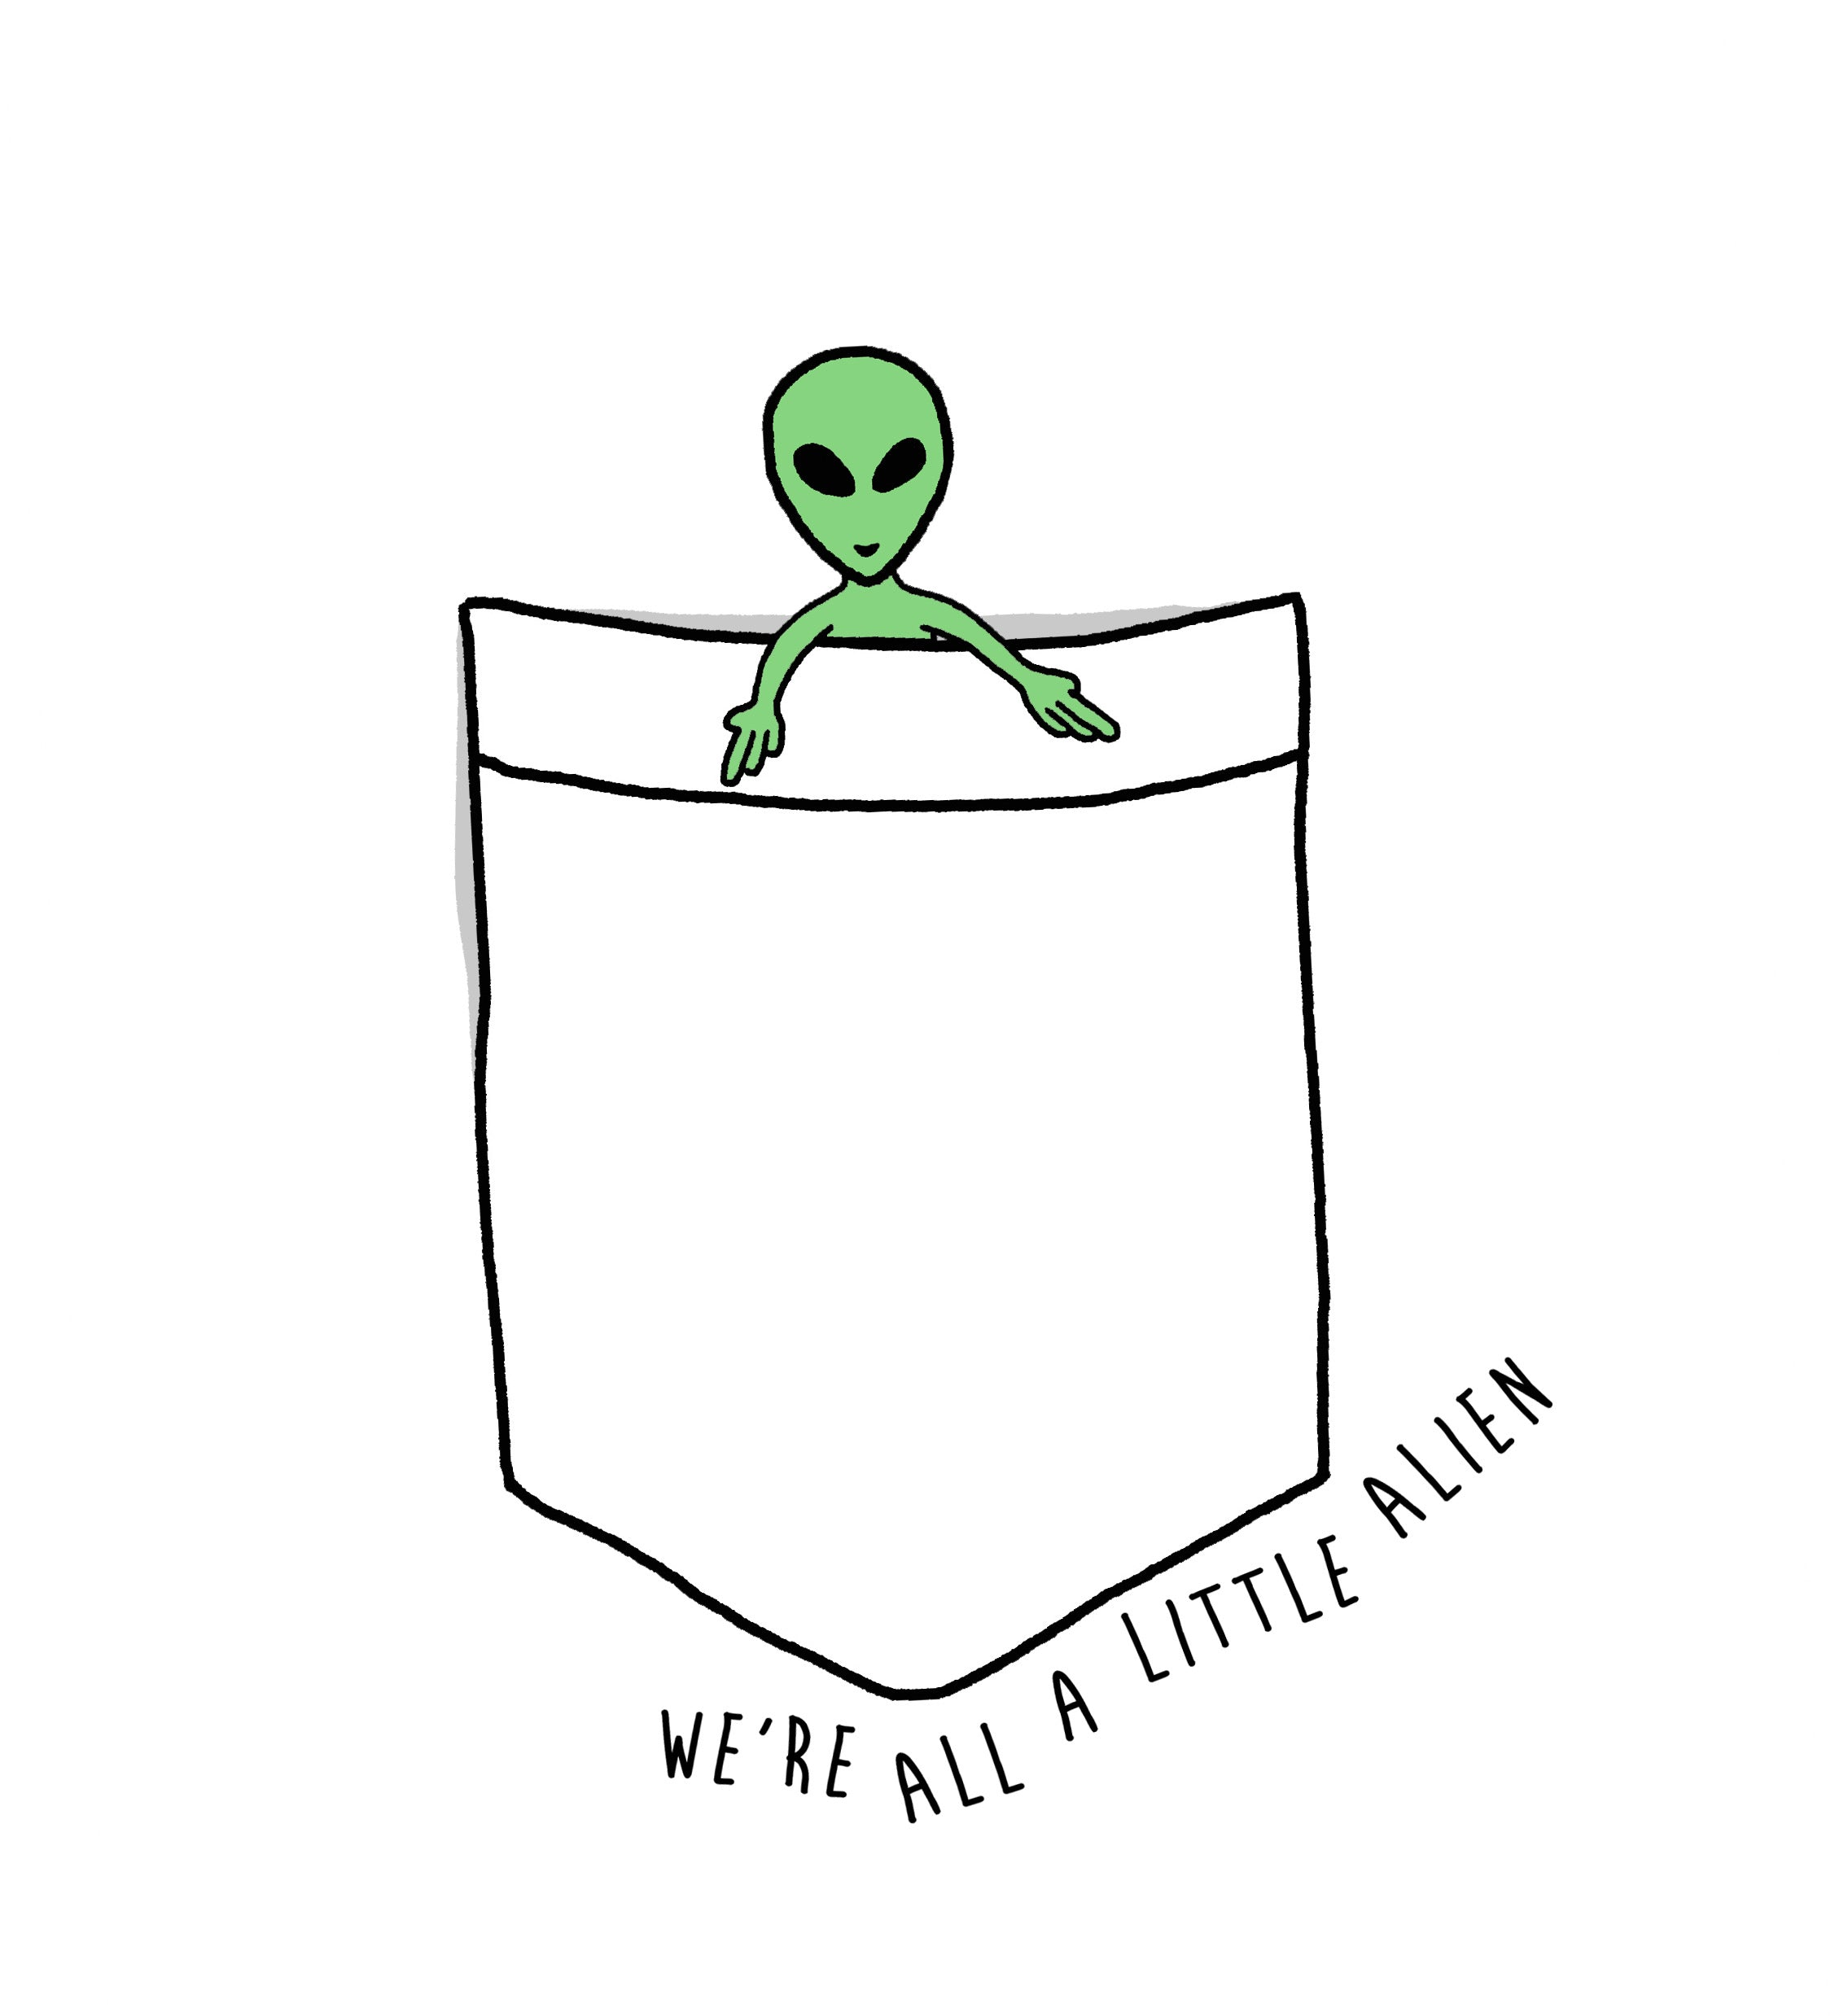 A LITTLE ALIEN SHORT SLEEVE